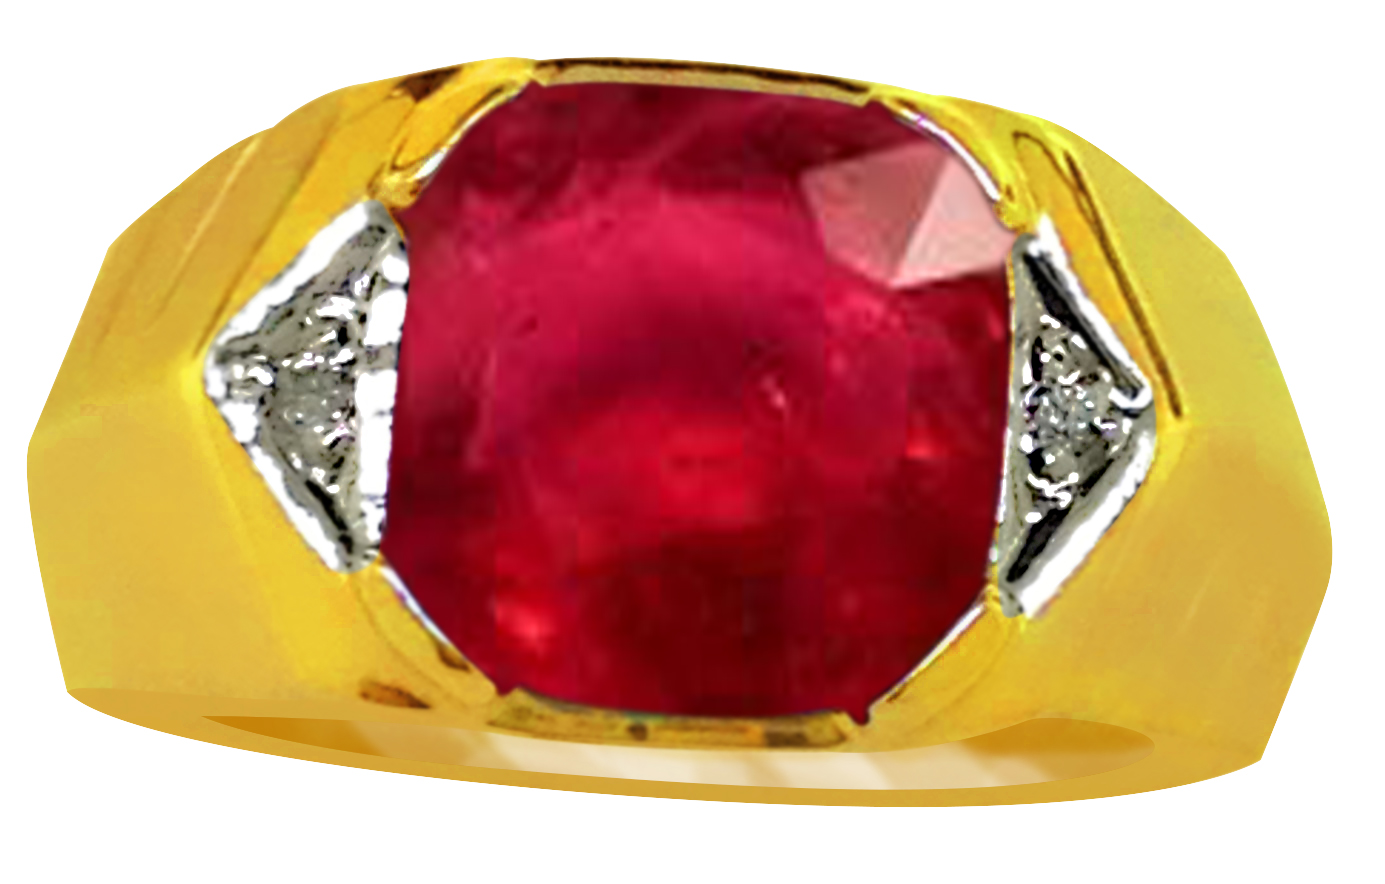 Select Gifts Grooms Man Wedding Title Gold Tie Clip Bar Red Ruby Crystal in Pouch